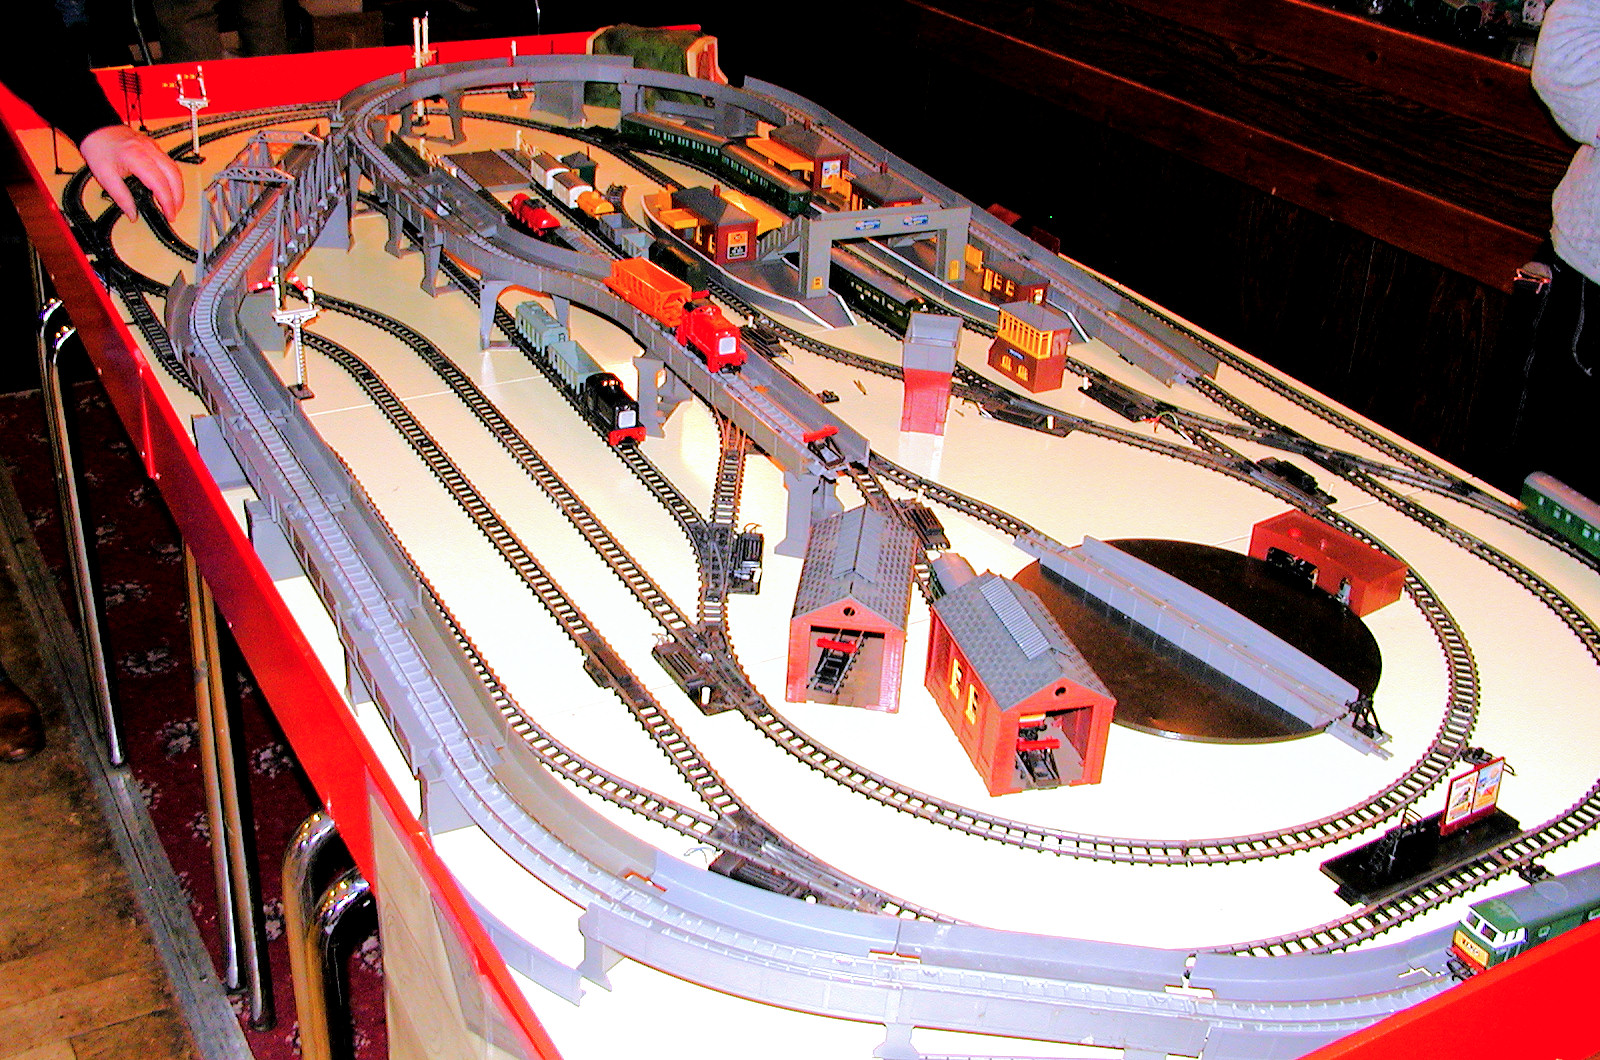 Ruud ter Neulen's Tri-ang layout at the Tri-ang Show Oxford 2007